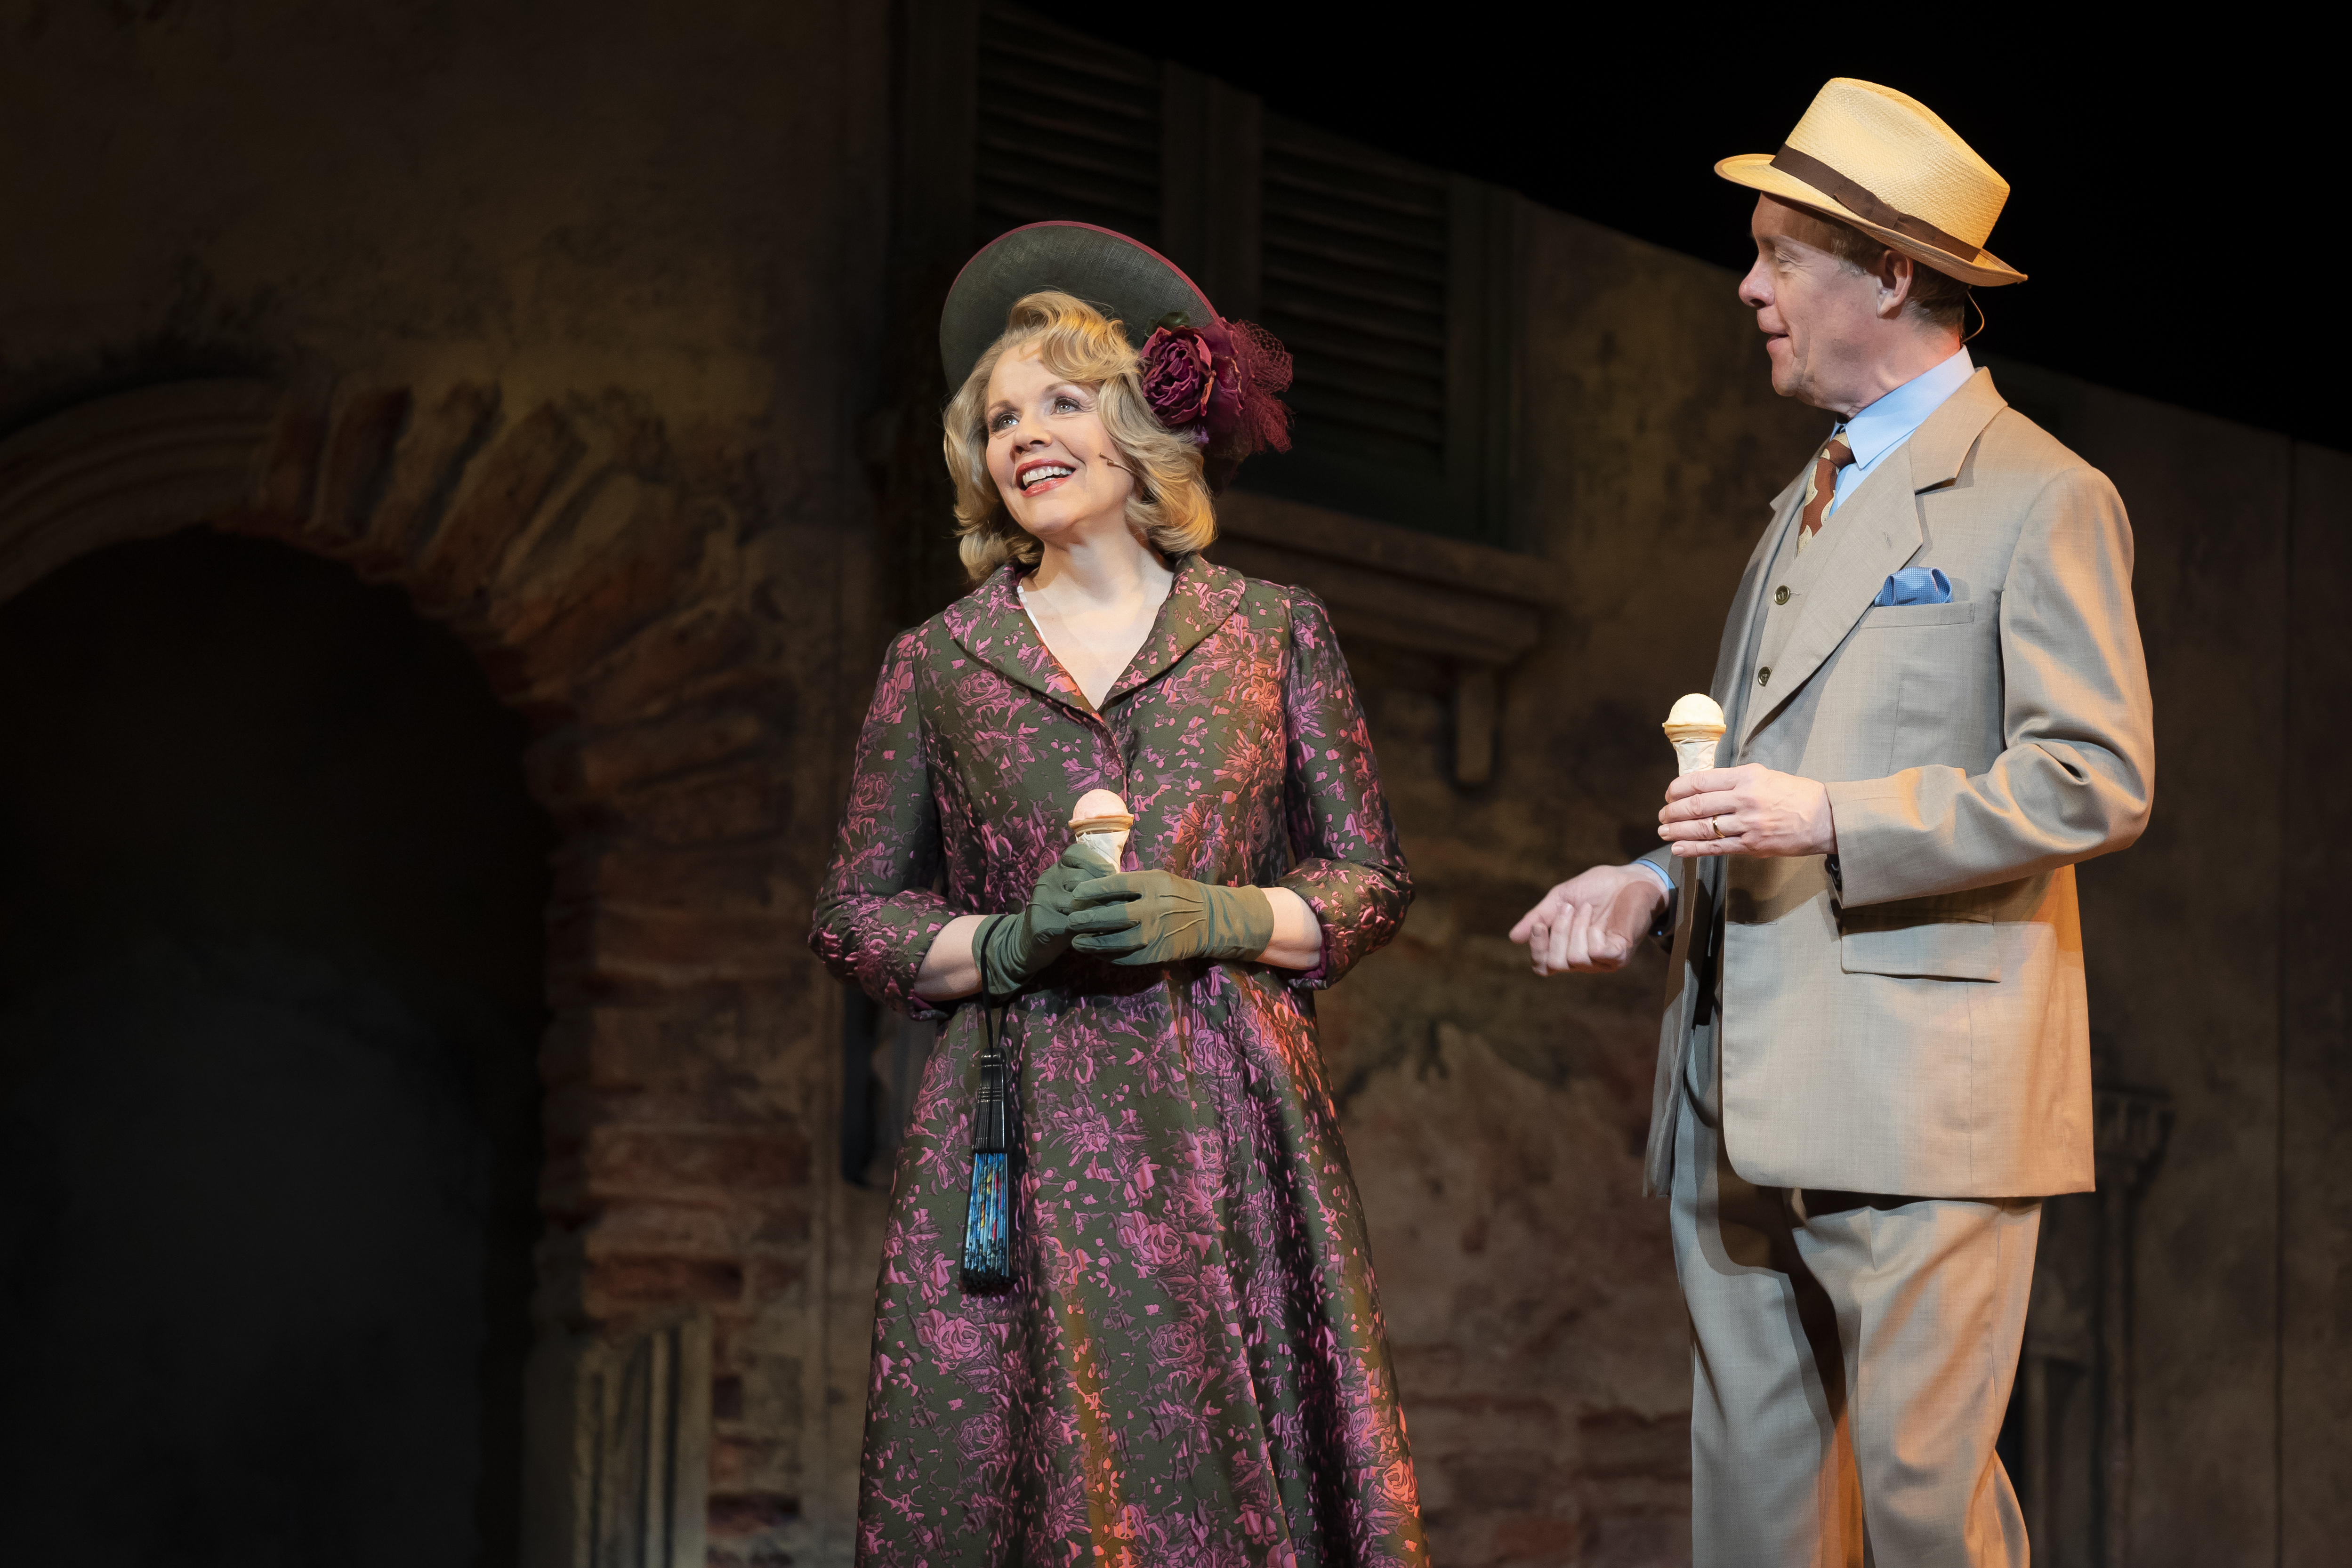 2_Renée Fleming and Alex Jennings in the ScenarioTwo production of The Light in the Piazza at Lyric Opera House in Chicago.Credit Liz Lauren